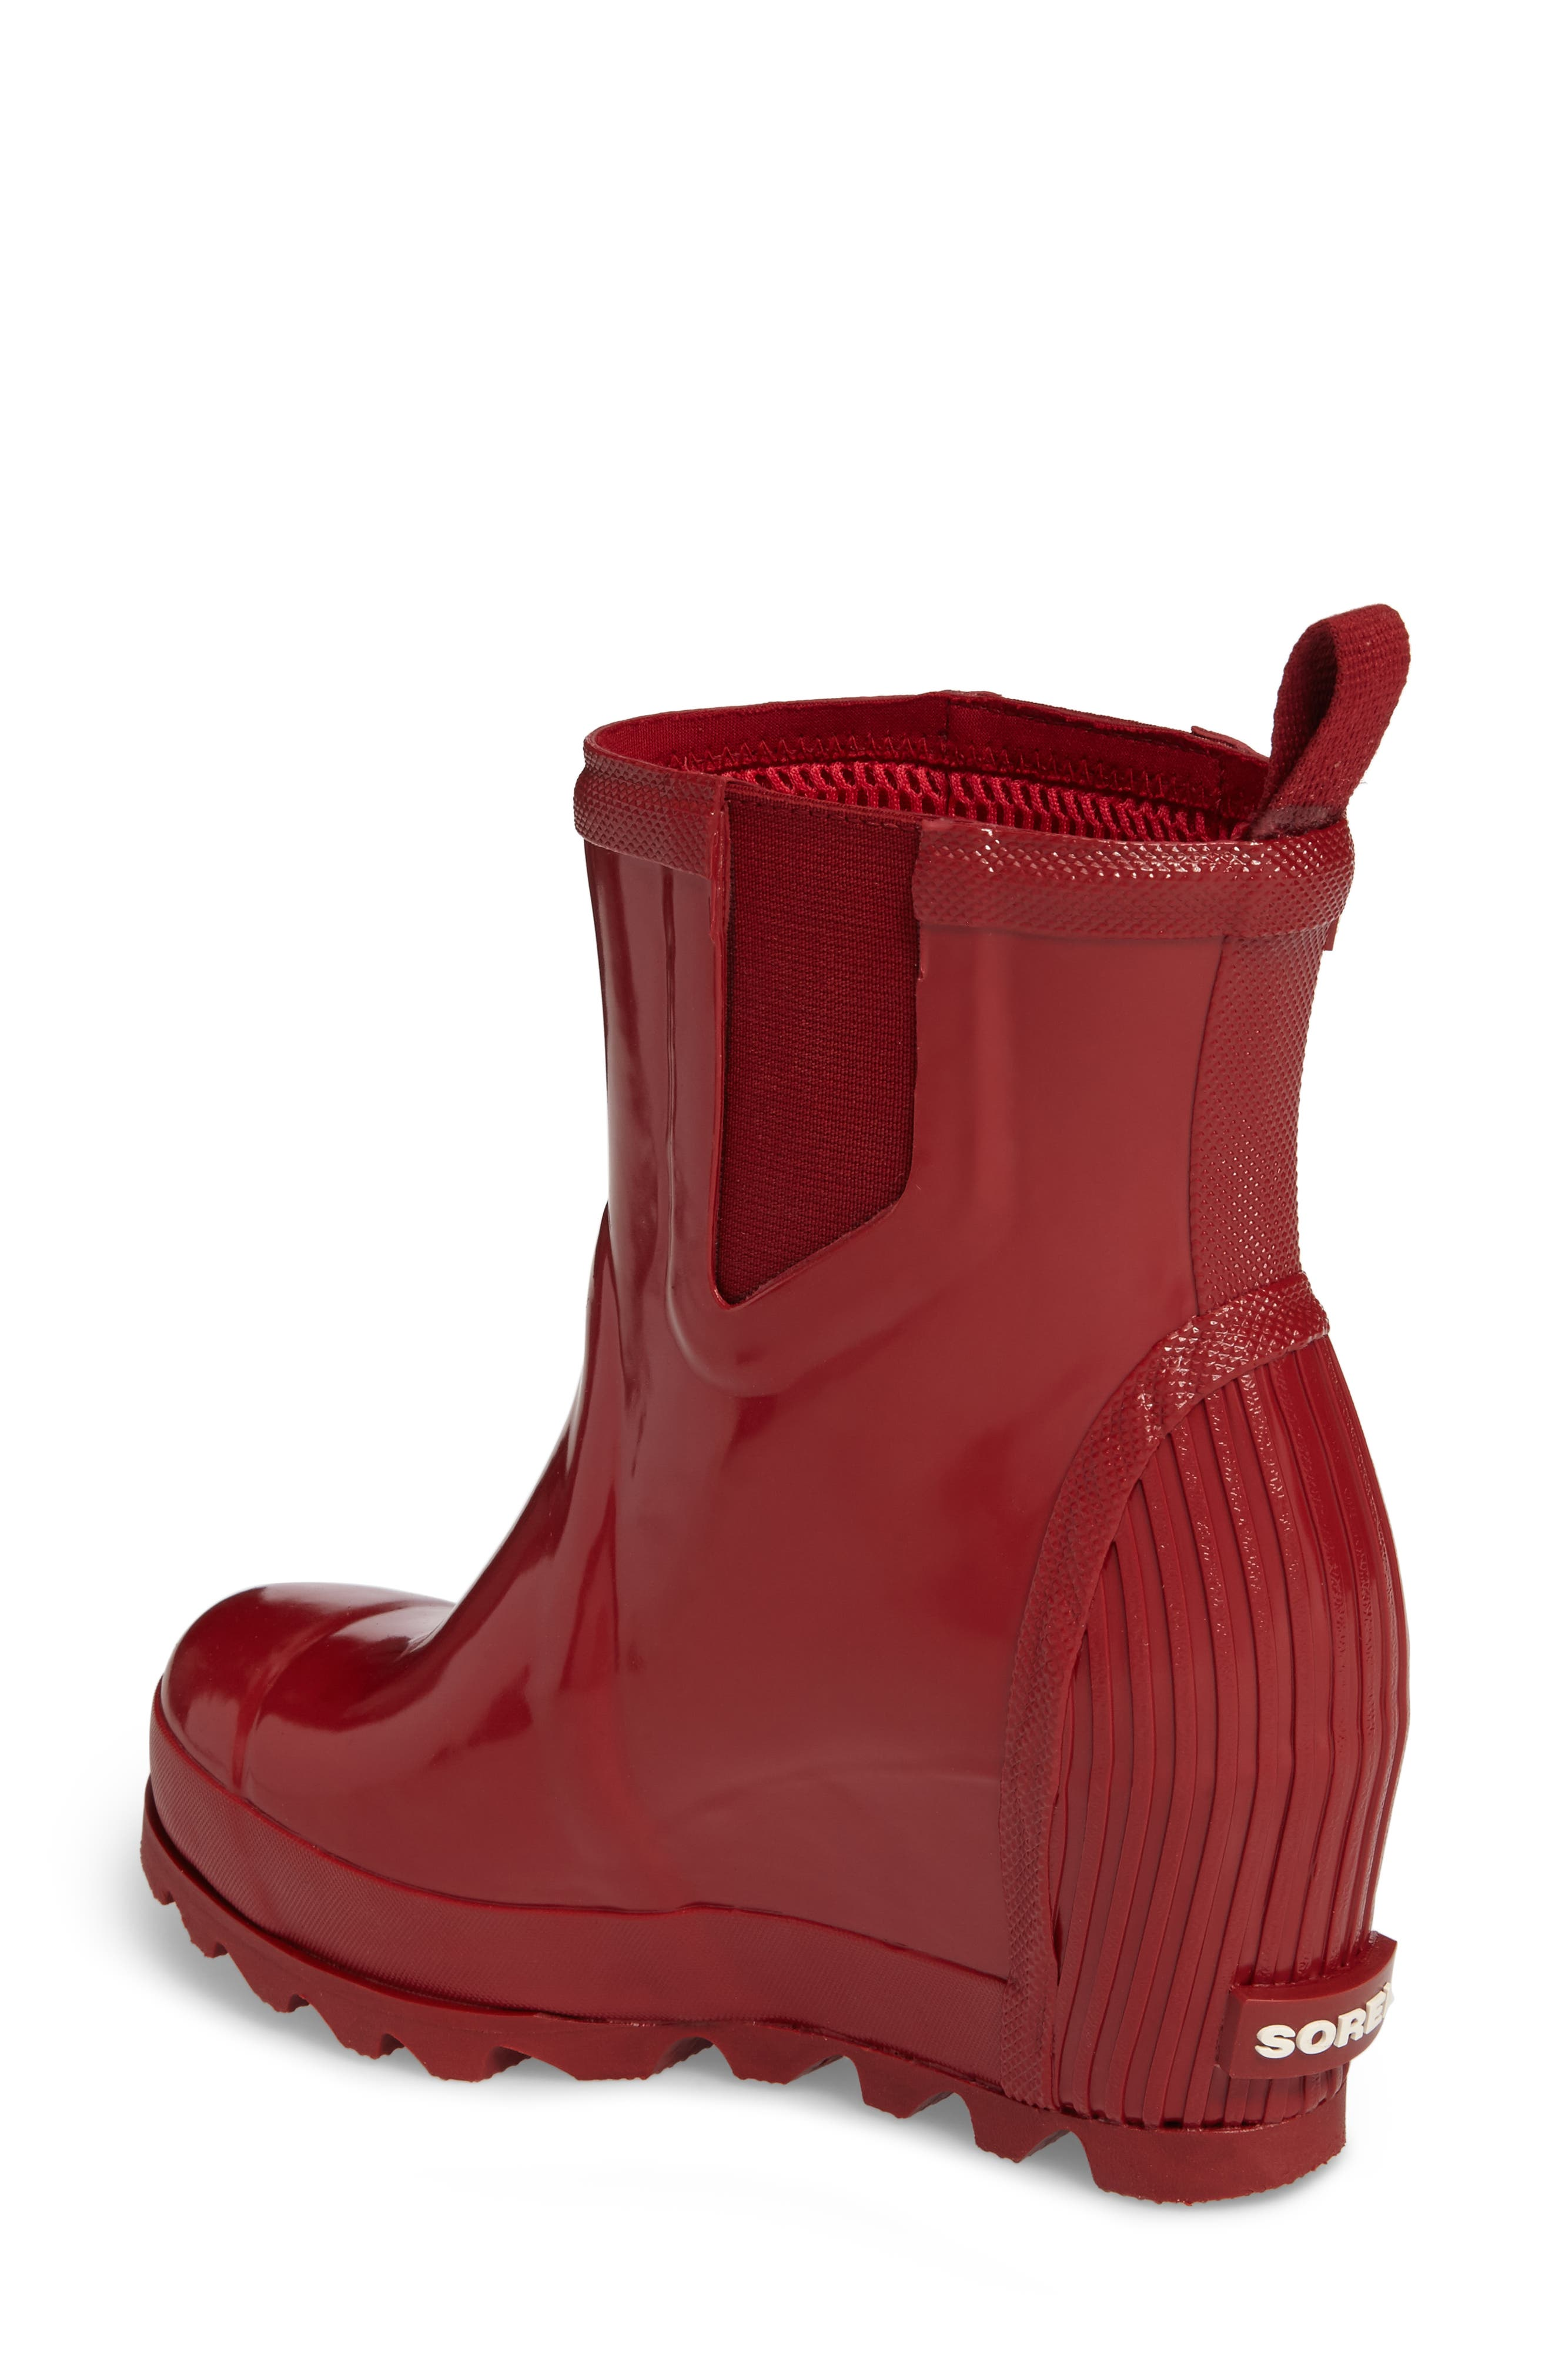 Joan Glossy Wedge Rain Boot,                             Alternate thumbnail 2, color,                             Red Dahlia/ Candy Apple